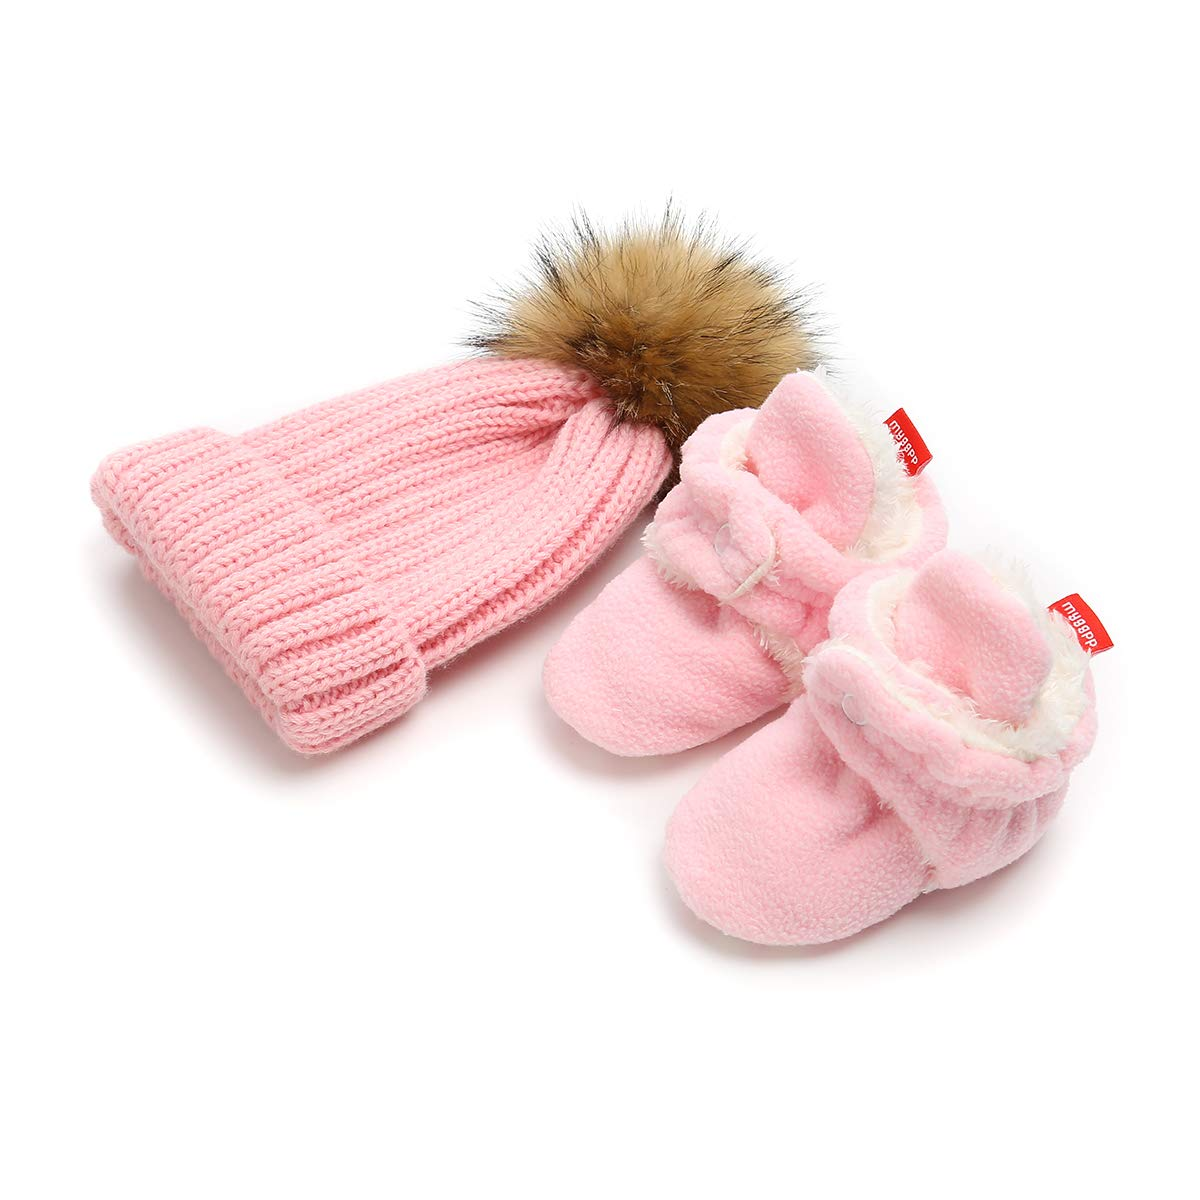 Isbasic Unisex Baby Cozy Fleece Lined Booties Non-Slip Infant Winter Warm Socks Shoes + Knit Pom Pom Hat (0-6 Months Pink)